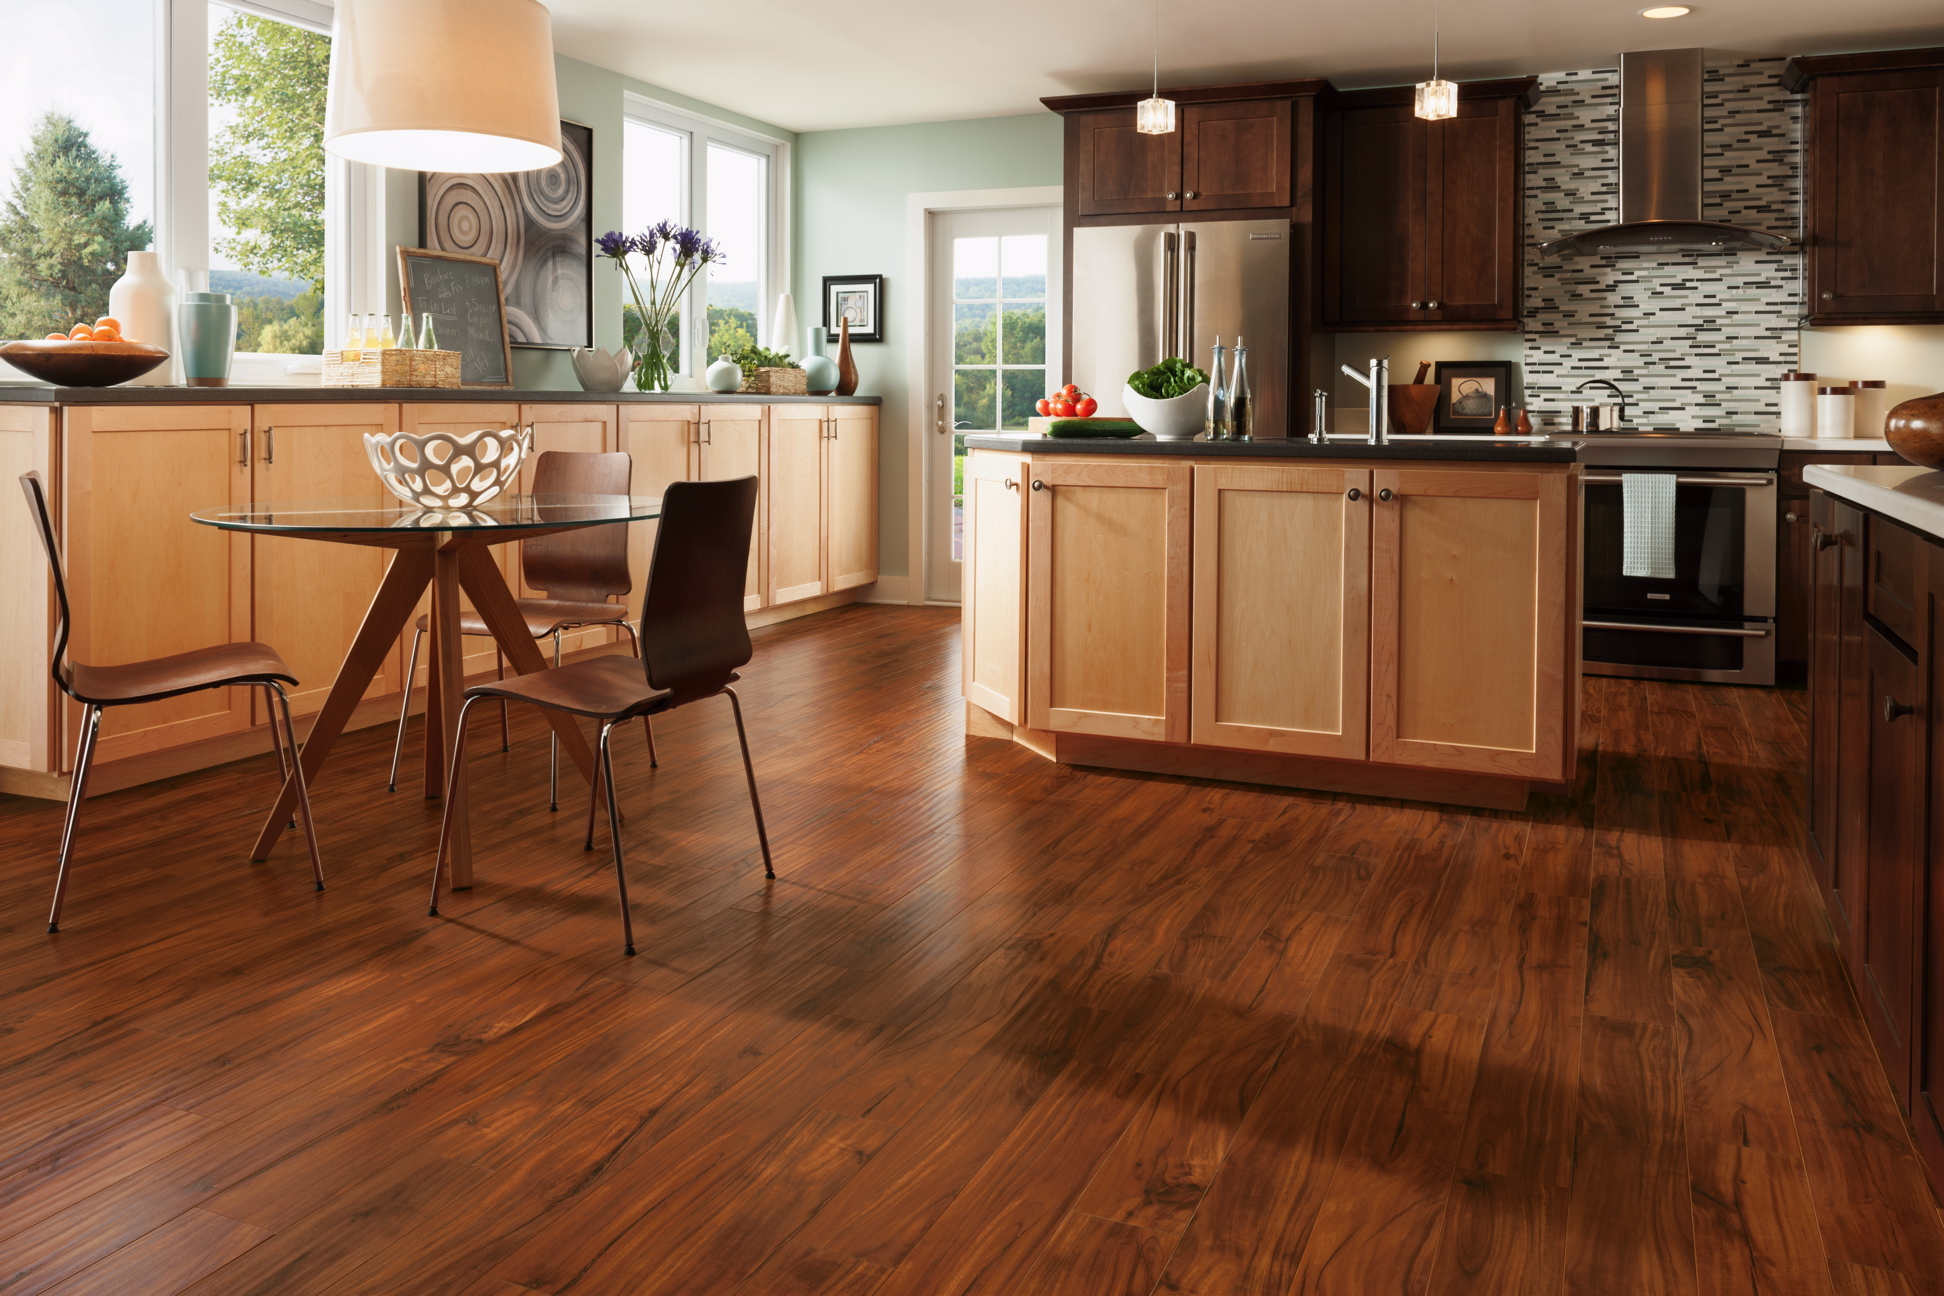 Flooring Contractors, Laminate, Hardwoods, Tile Flooring: Garden City,  Boise, ID